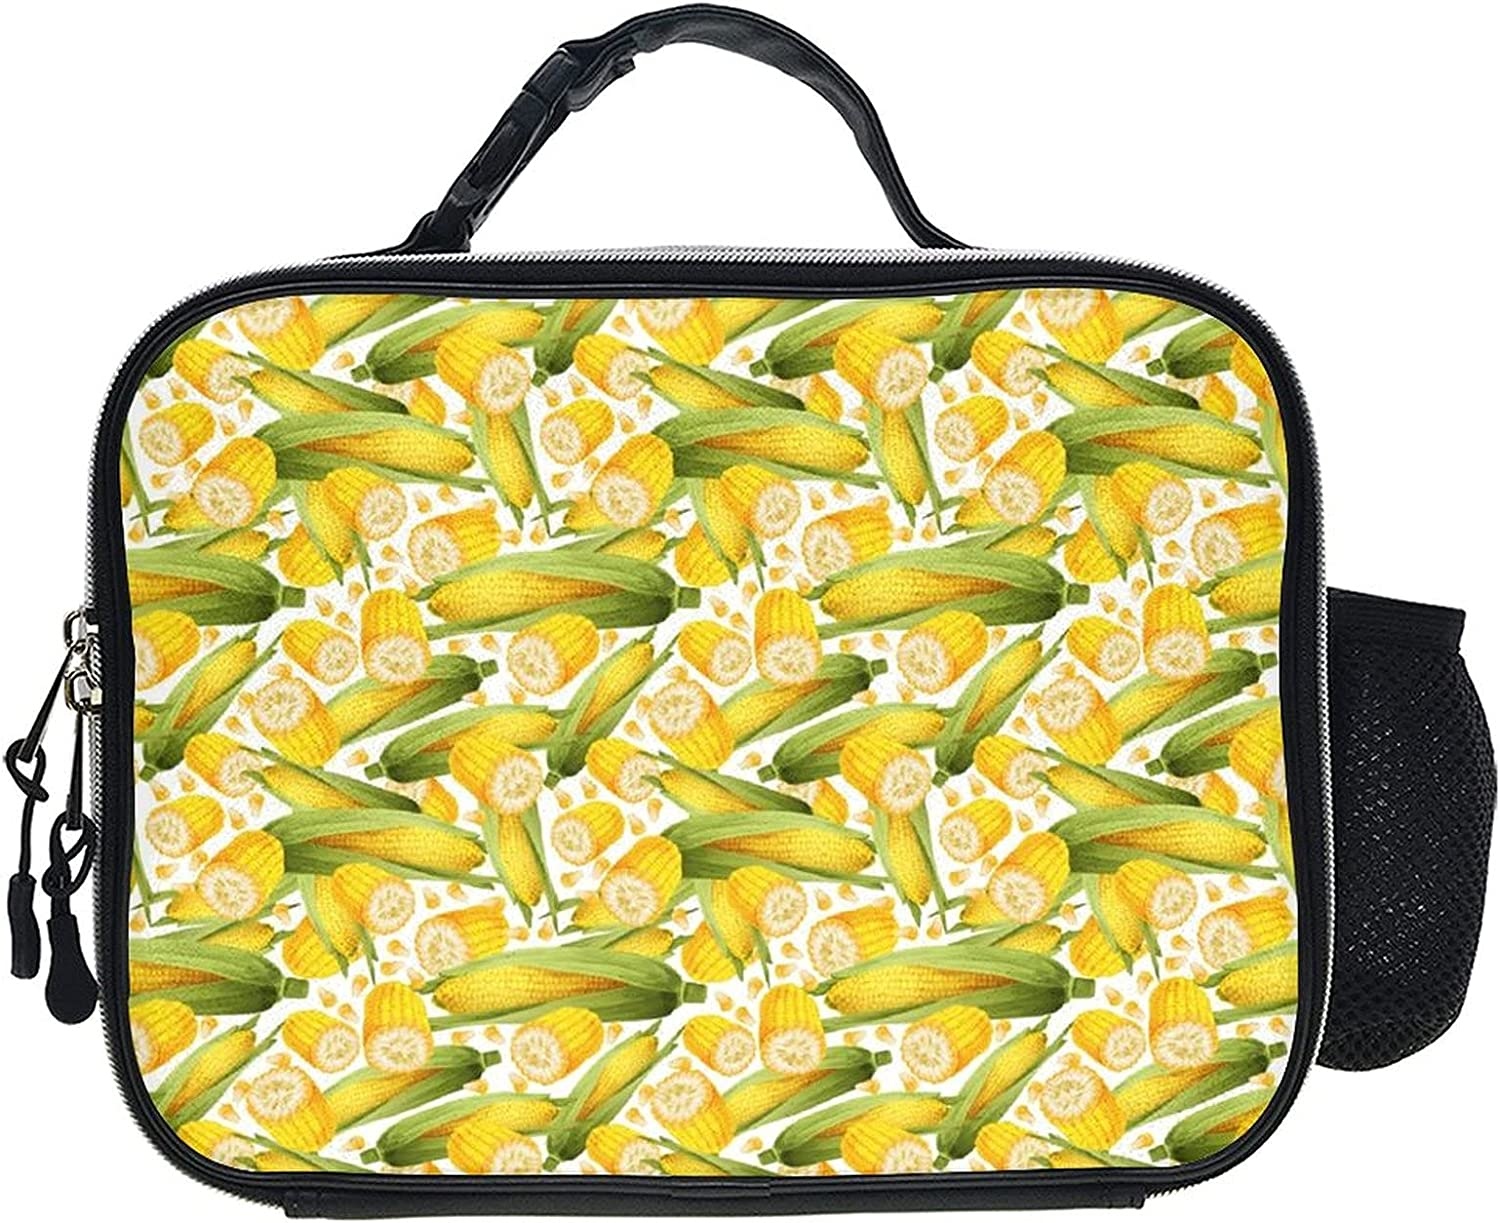 Lunch Box Lunchbag Can Hang Backpack Small Durable Tote Bag Handbags Meal Prep